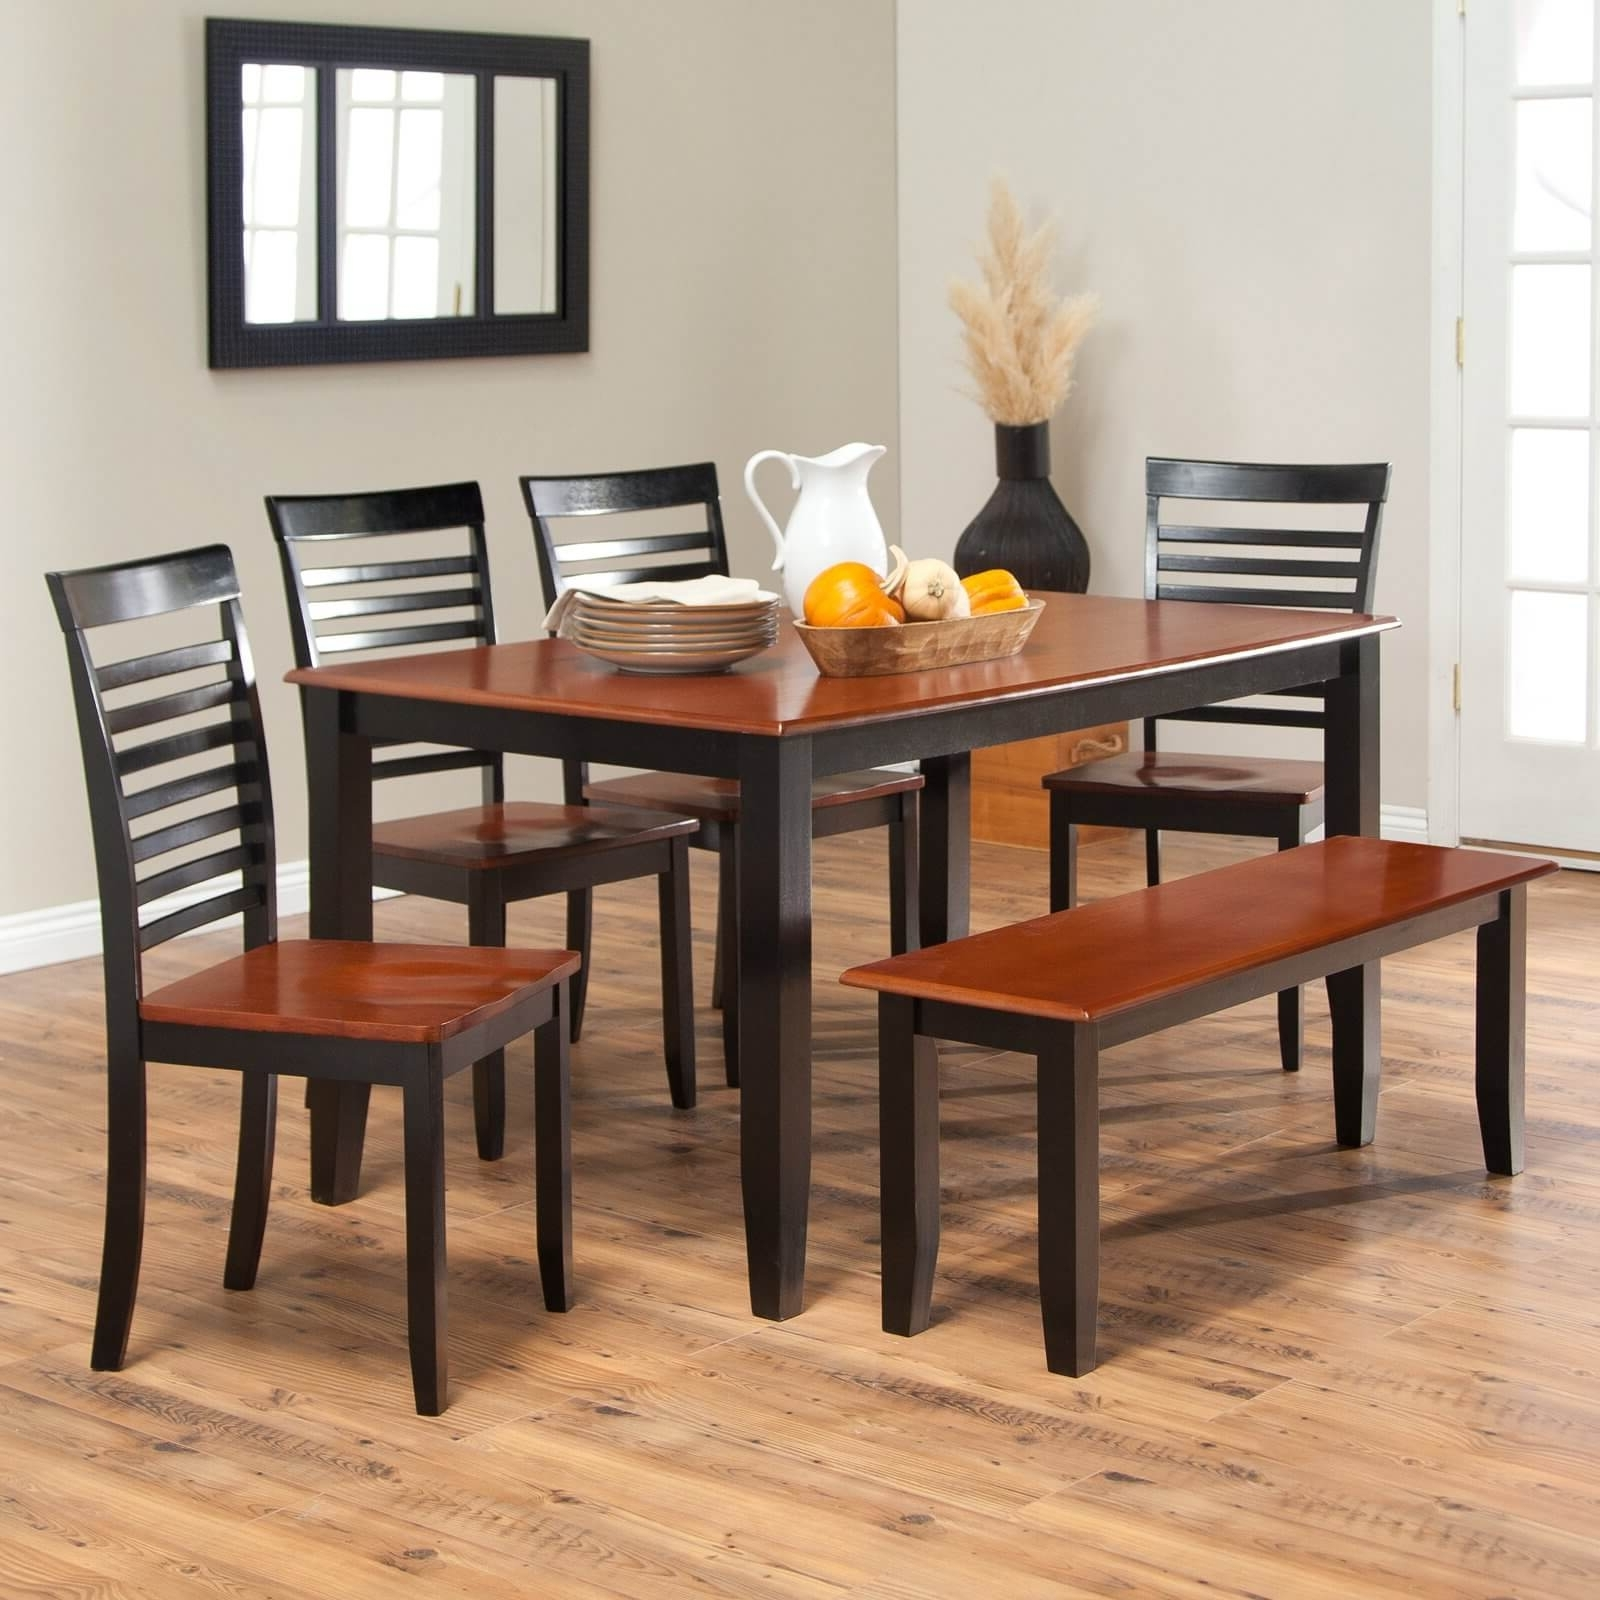 26 Dining Room Sets (Big And Small) With Bench Seating (2018) In Most Popular Craftsman 5 Piece Round Dining Sets With Side Chairs (View 12 of 25)